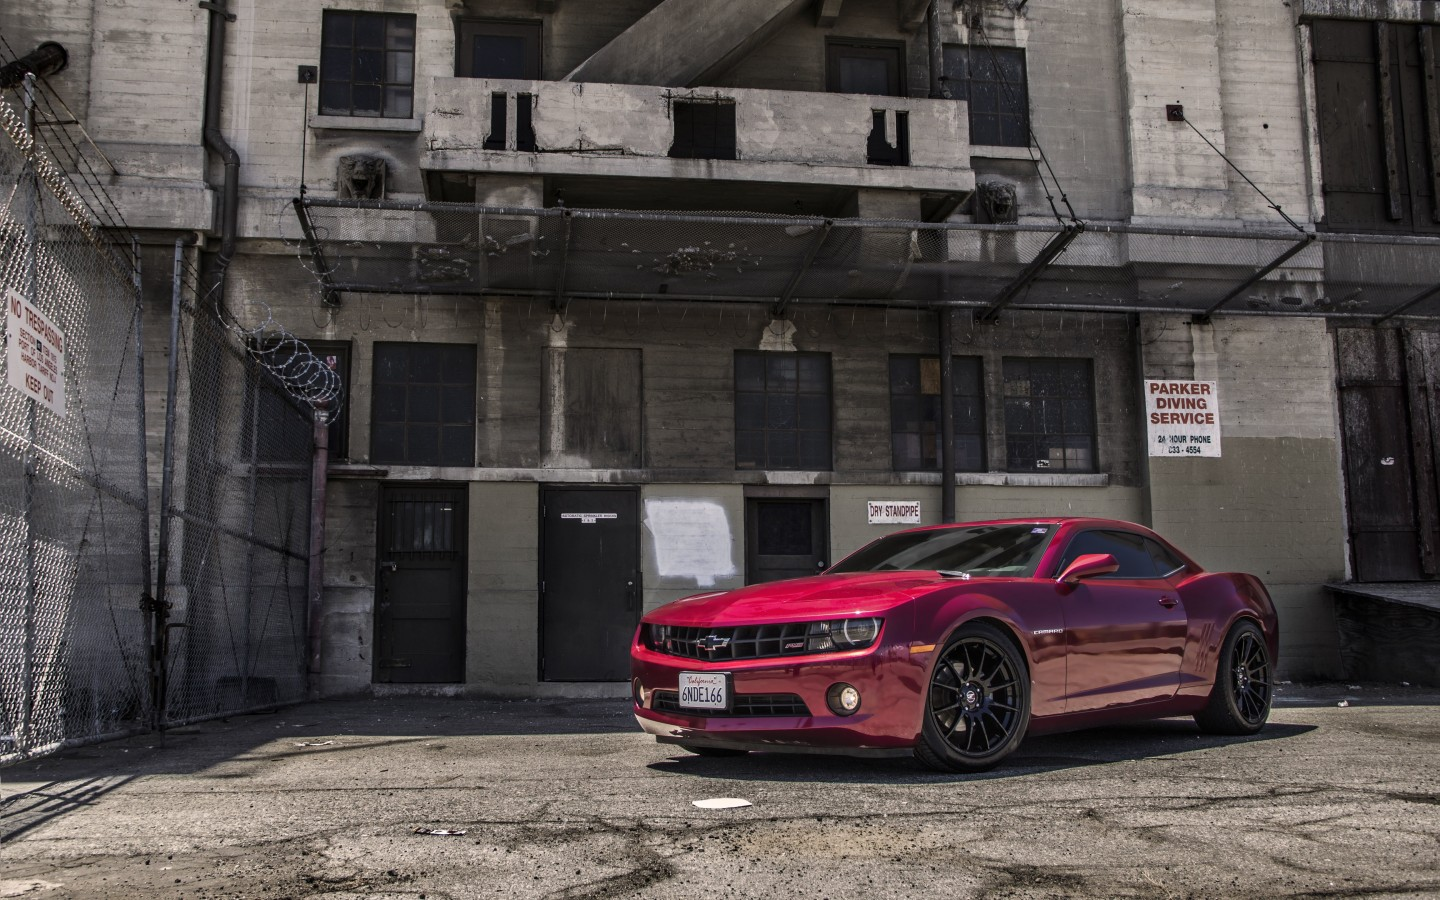 Red Chevrolet Camaro RS Wallpaper for Desktop 1440x900